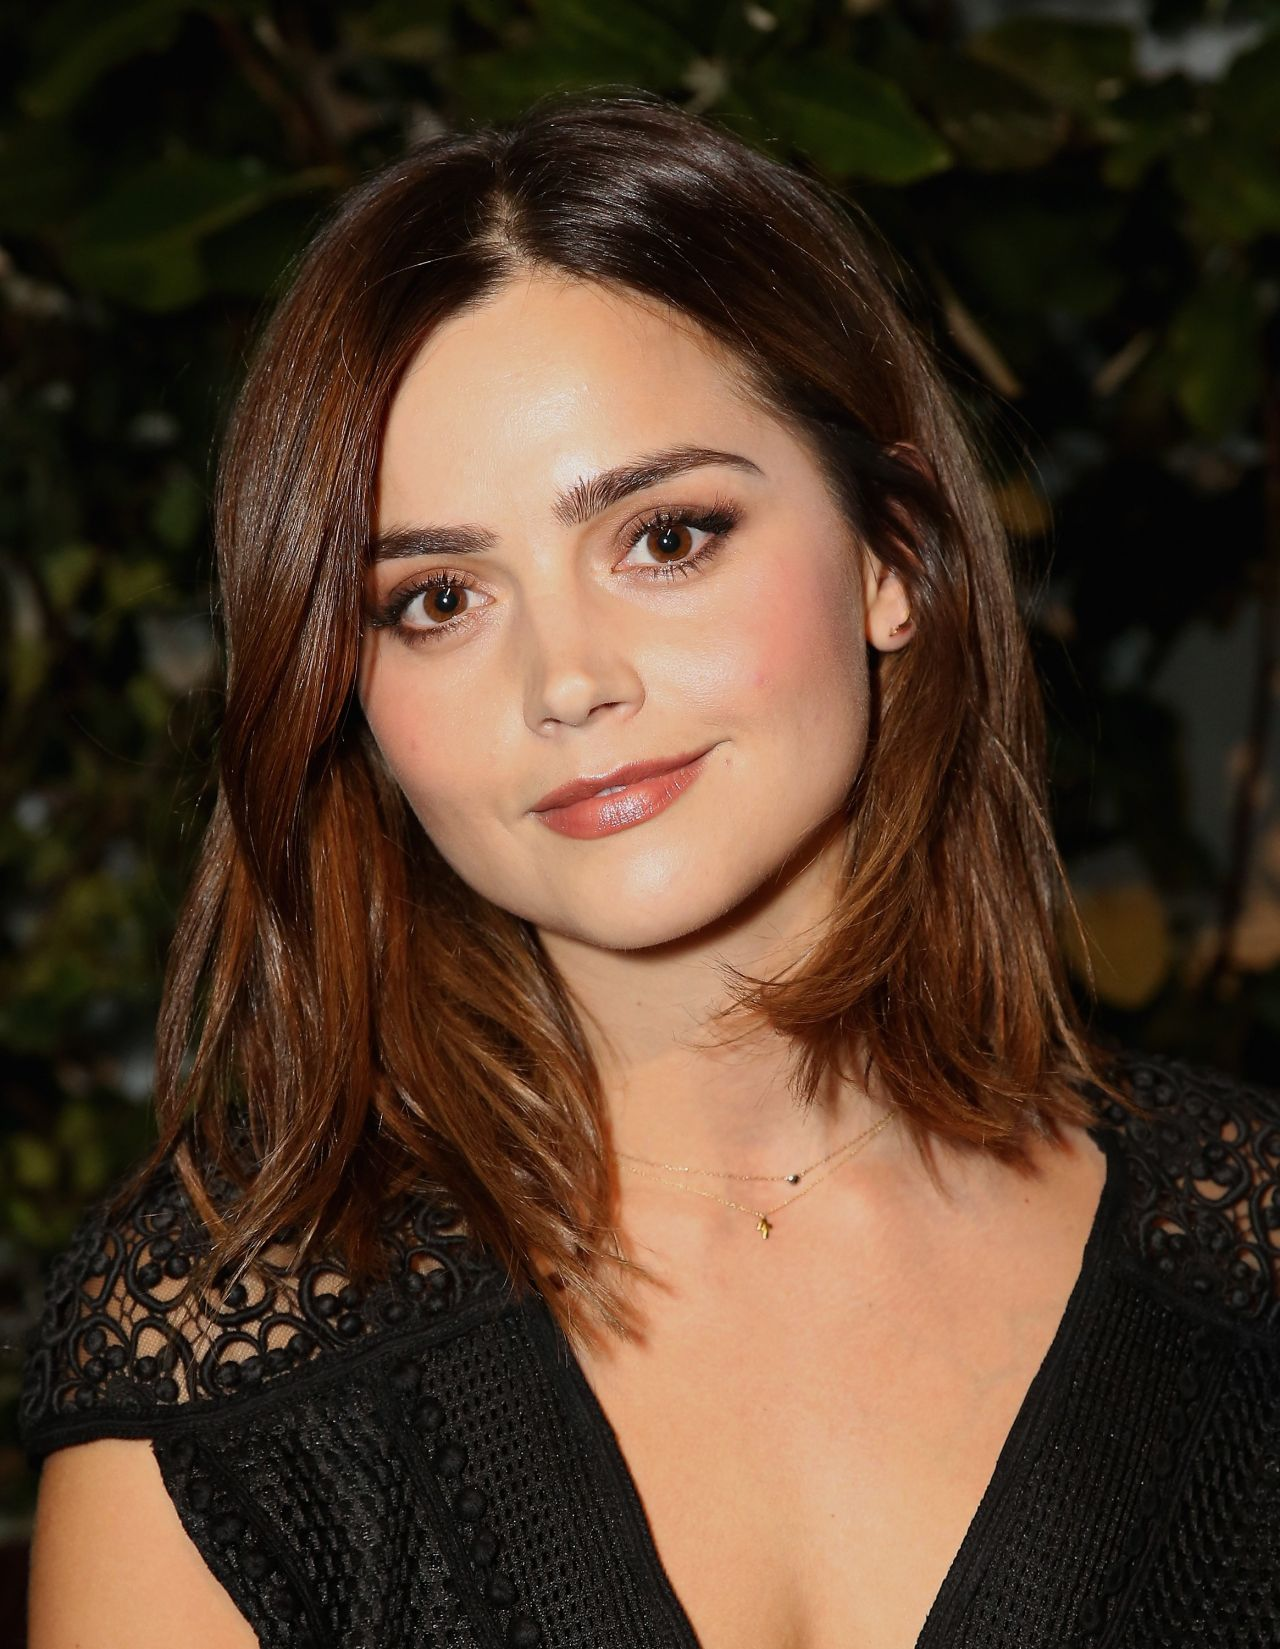 Jenna-Louise Coleman - My Burberry Black Launch Event in